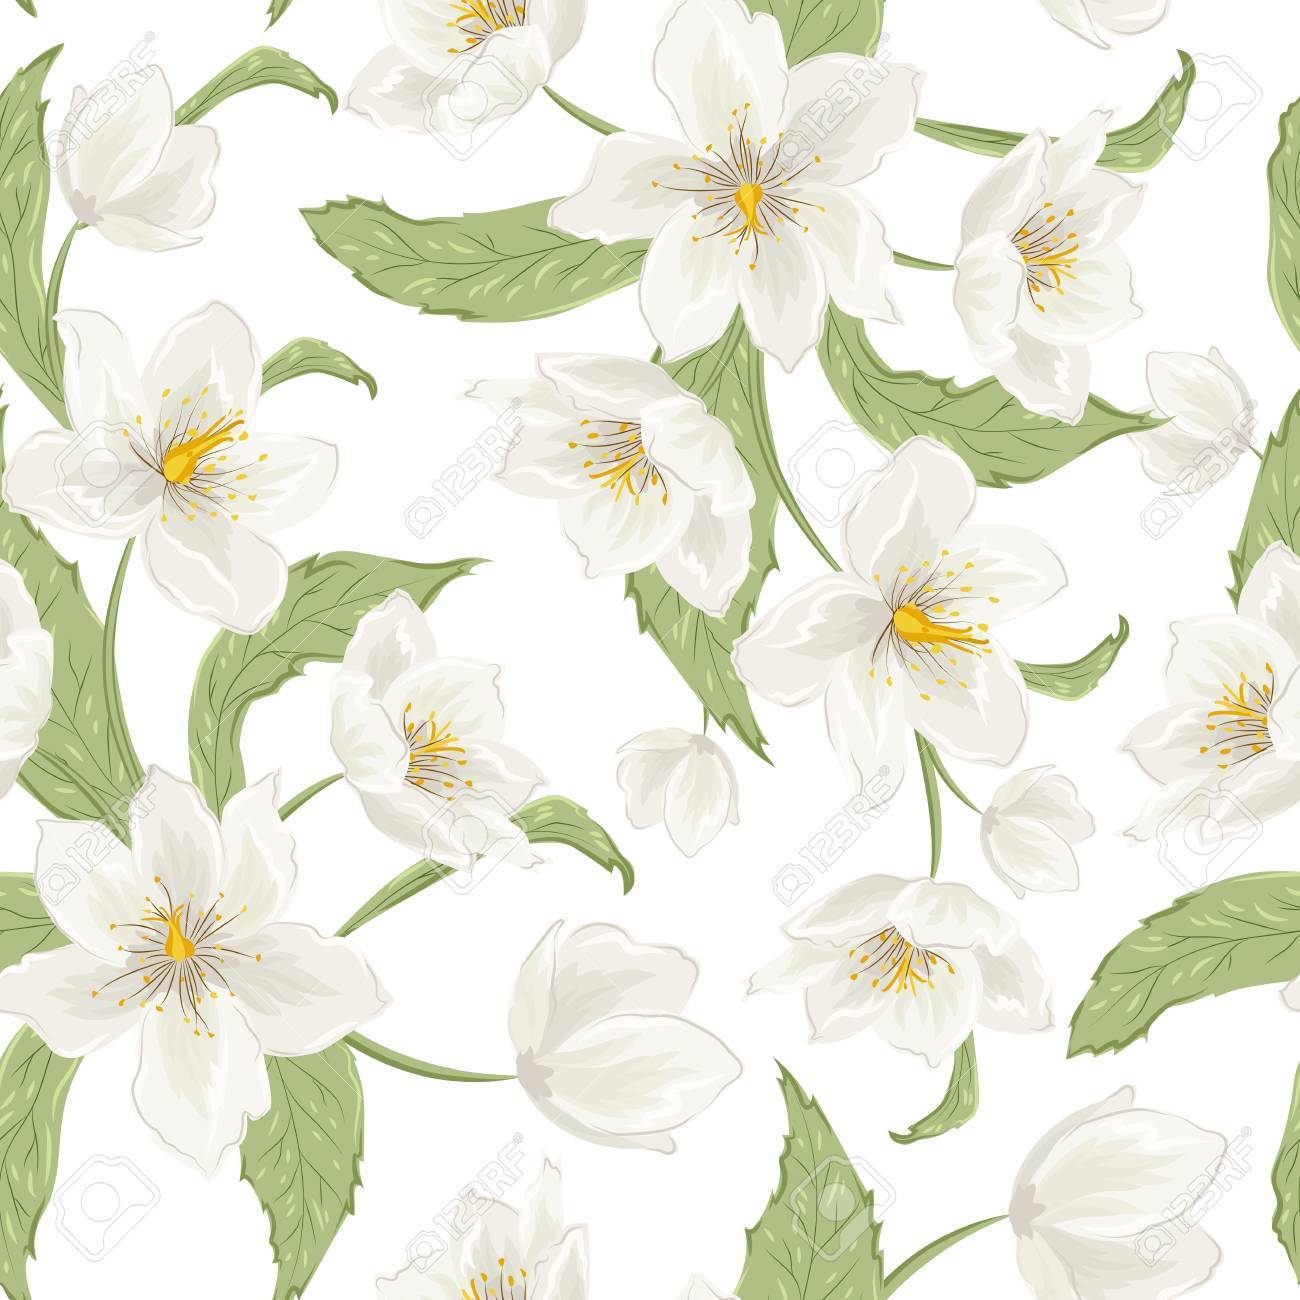 Blooming Hellebore Flowers Foliage Floral Seamless Pattern